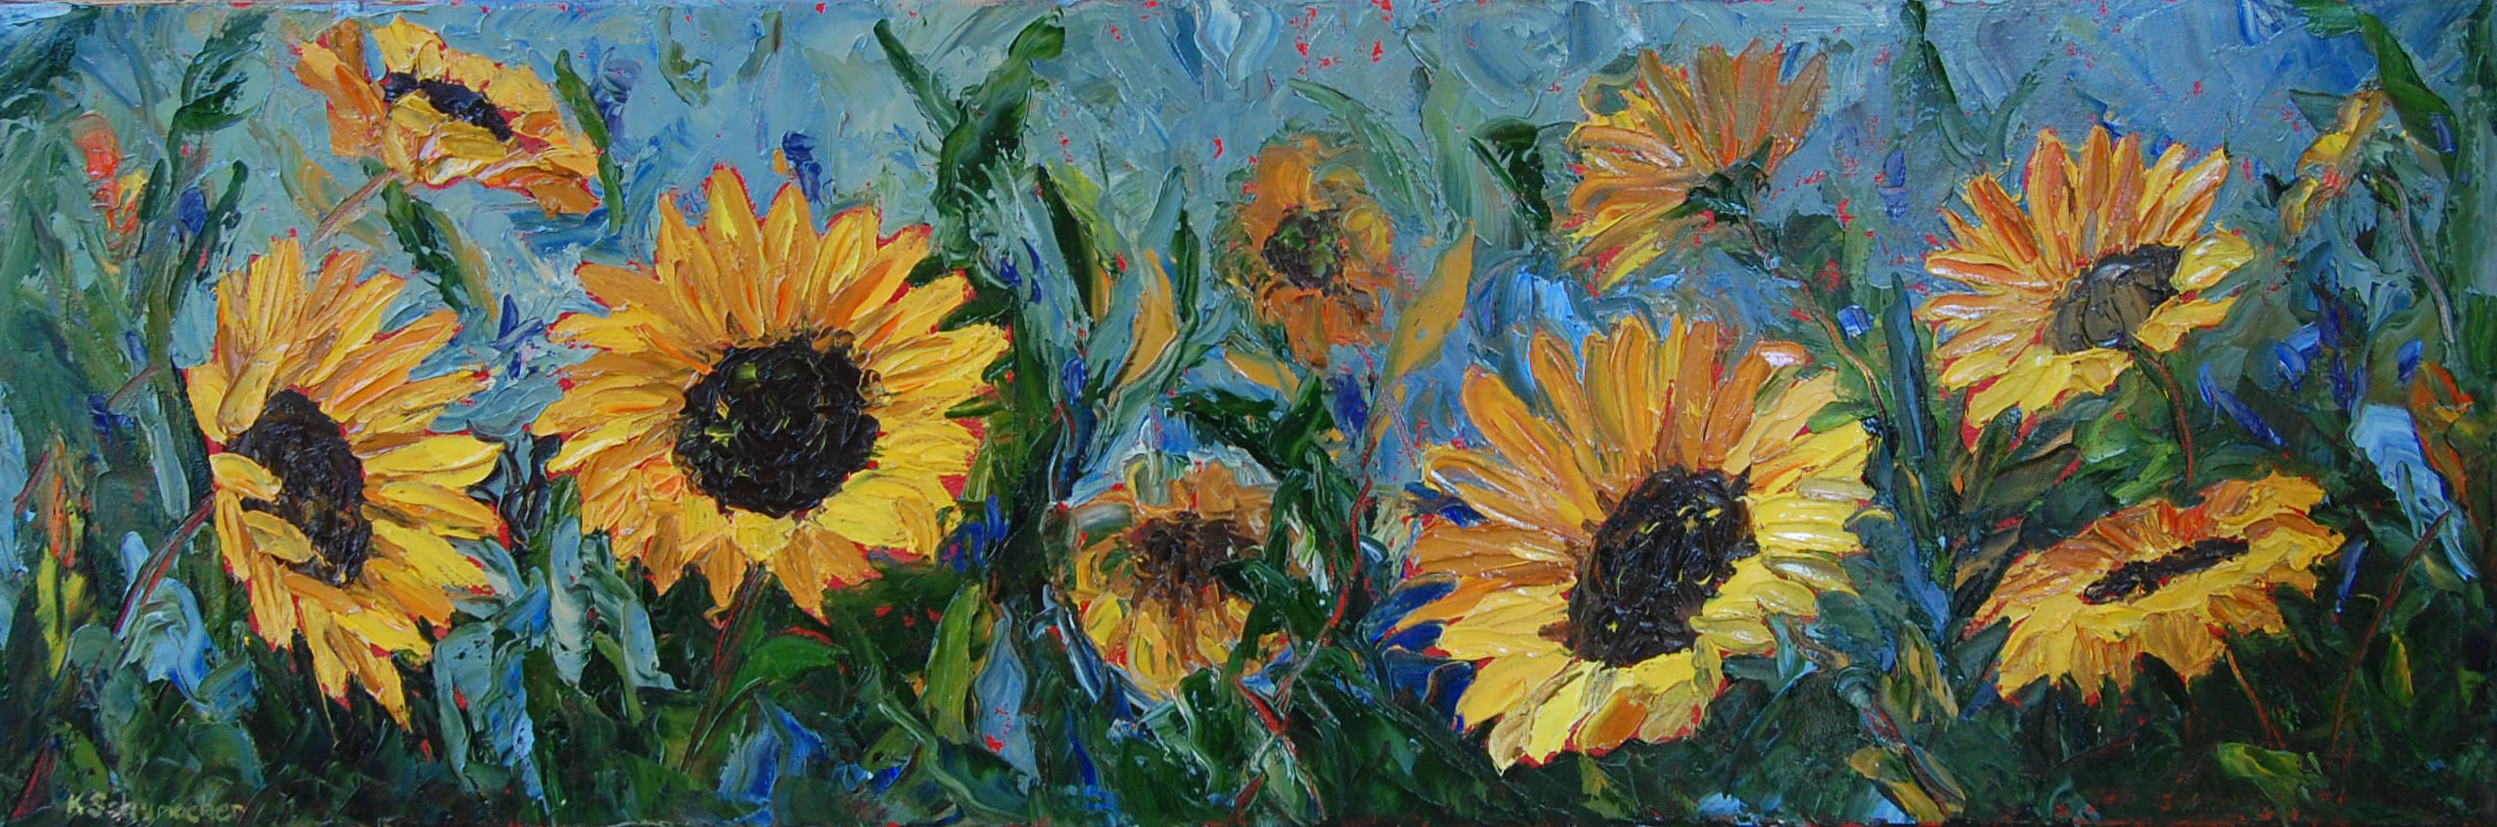 sunny side 12x36